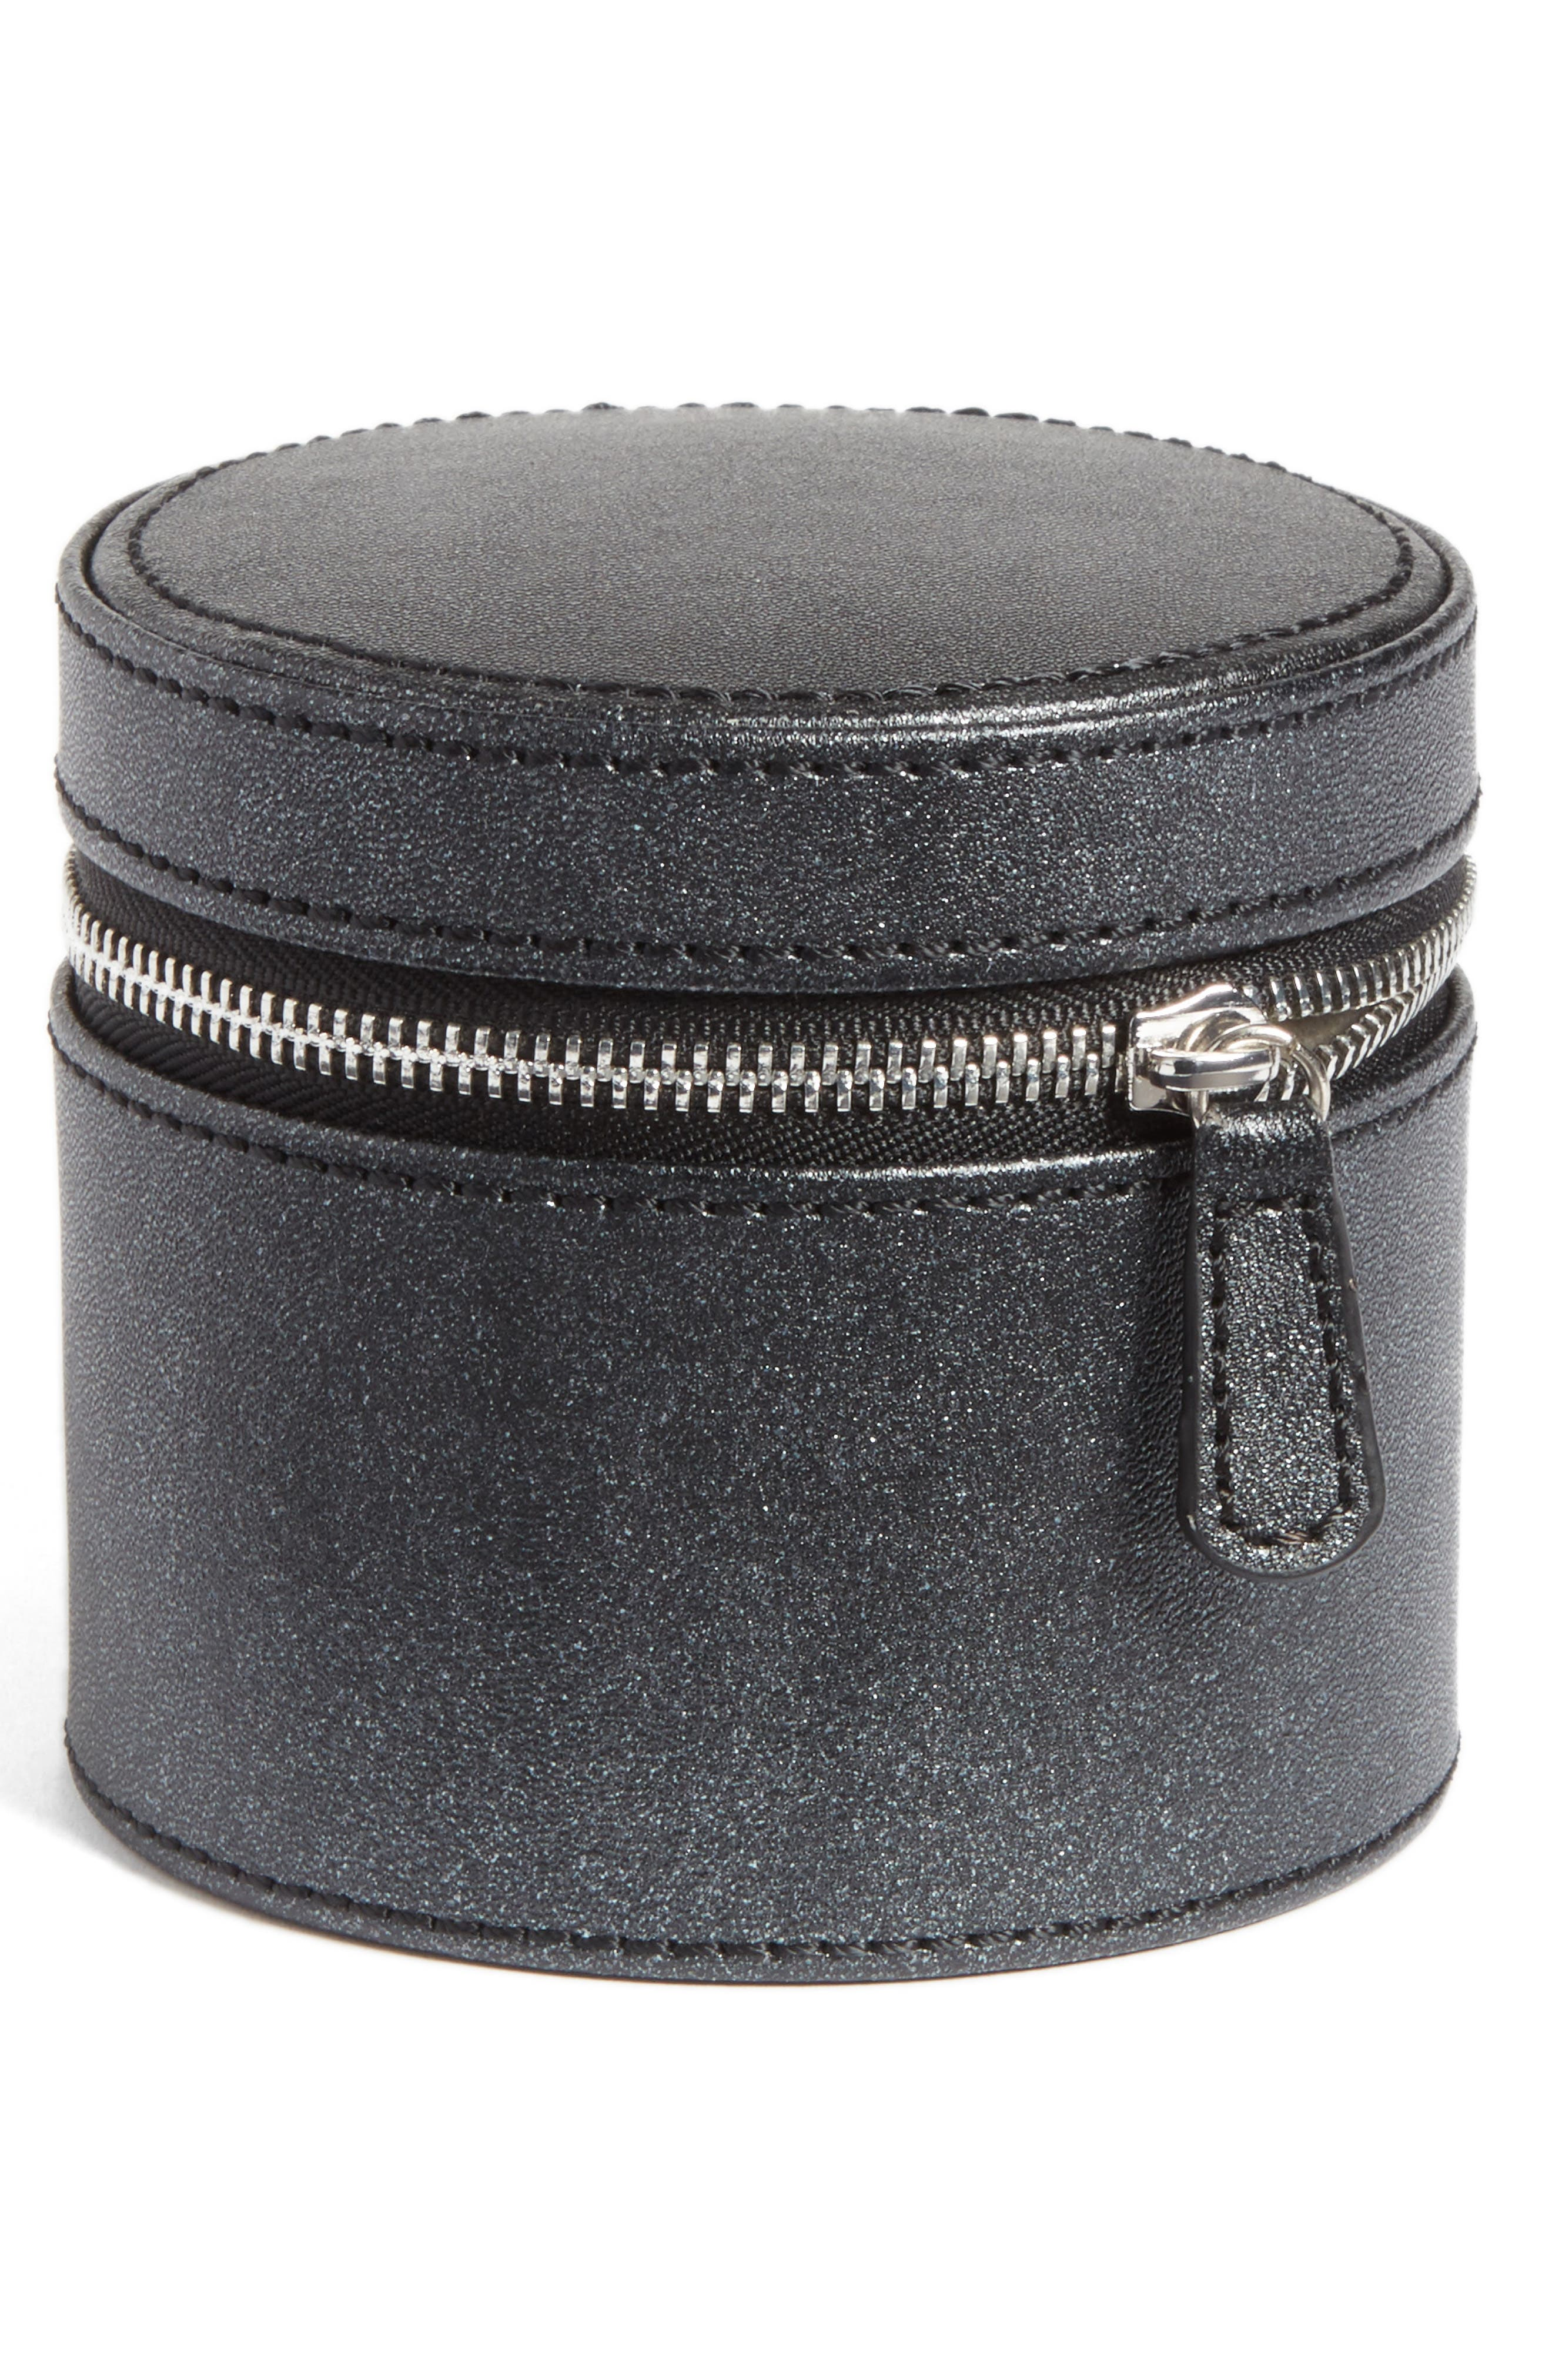 Small Round Zippered Jewelry Case,                         Main,                         color, Black